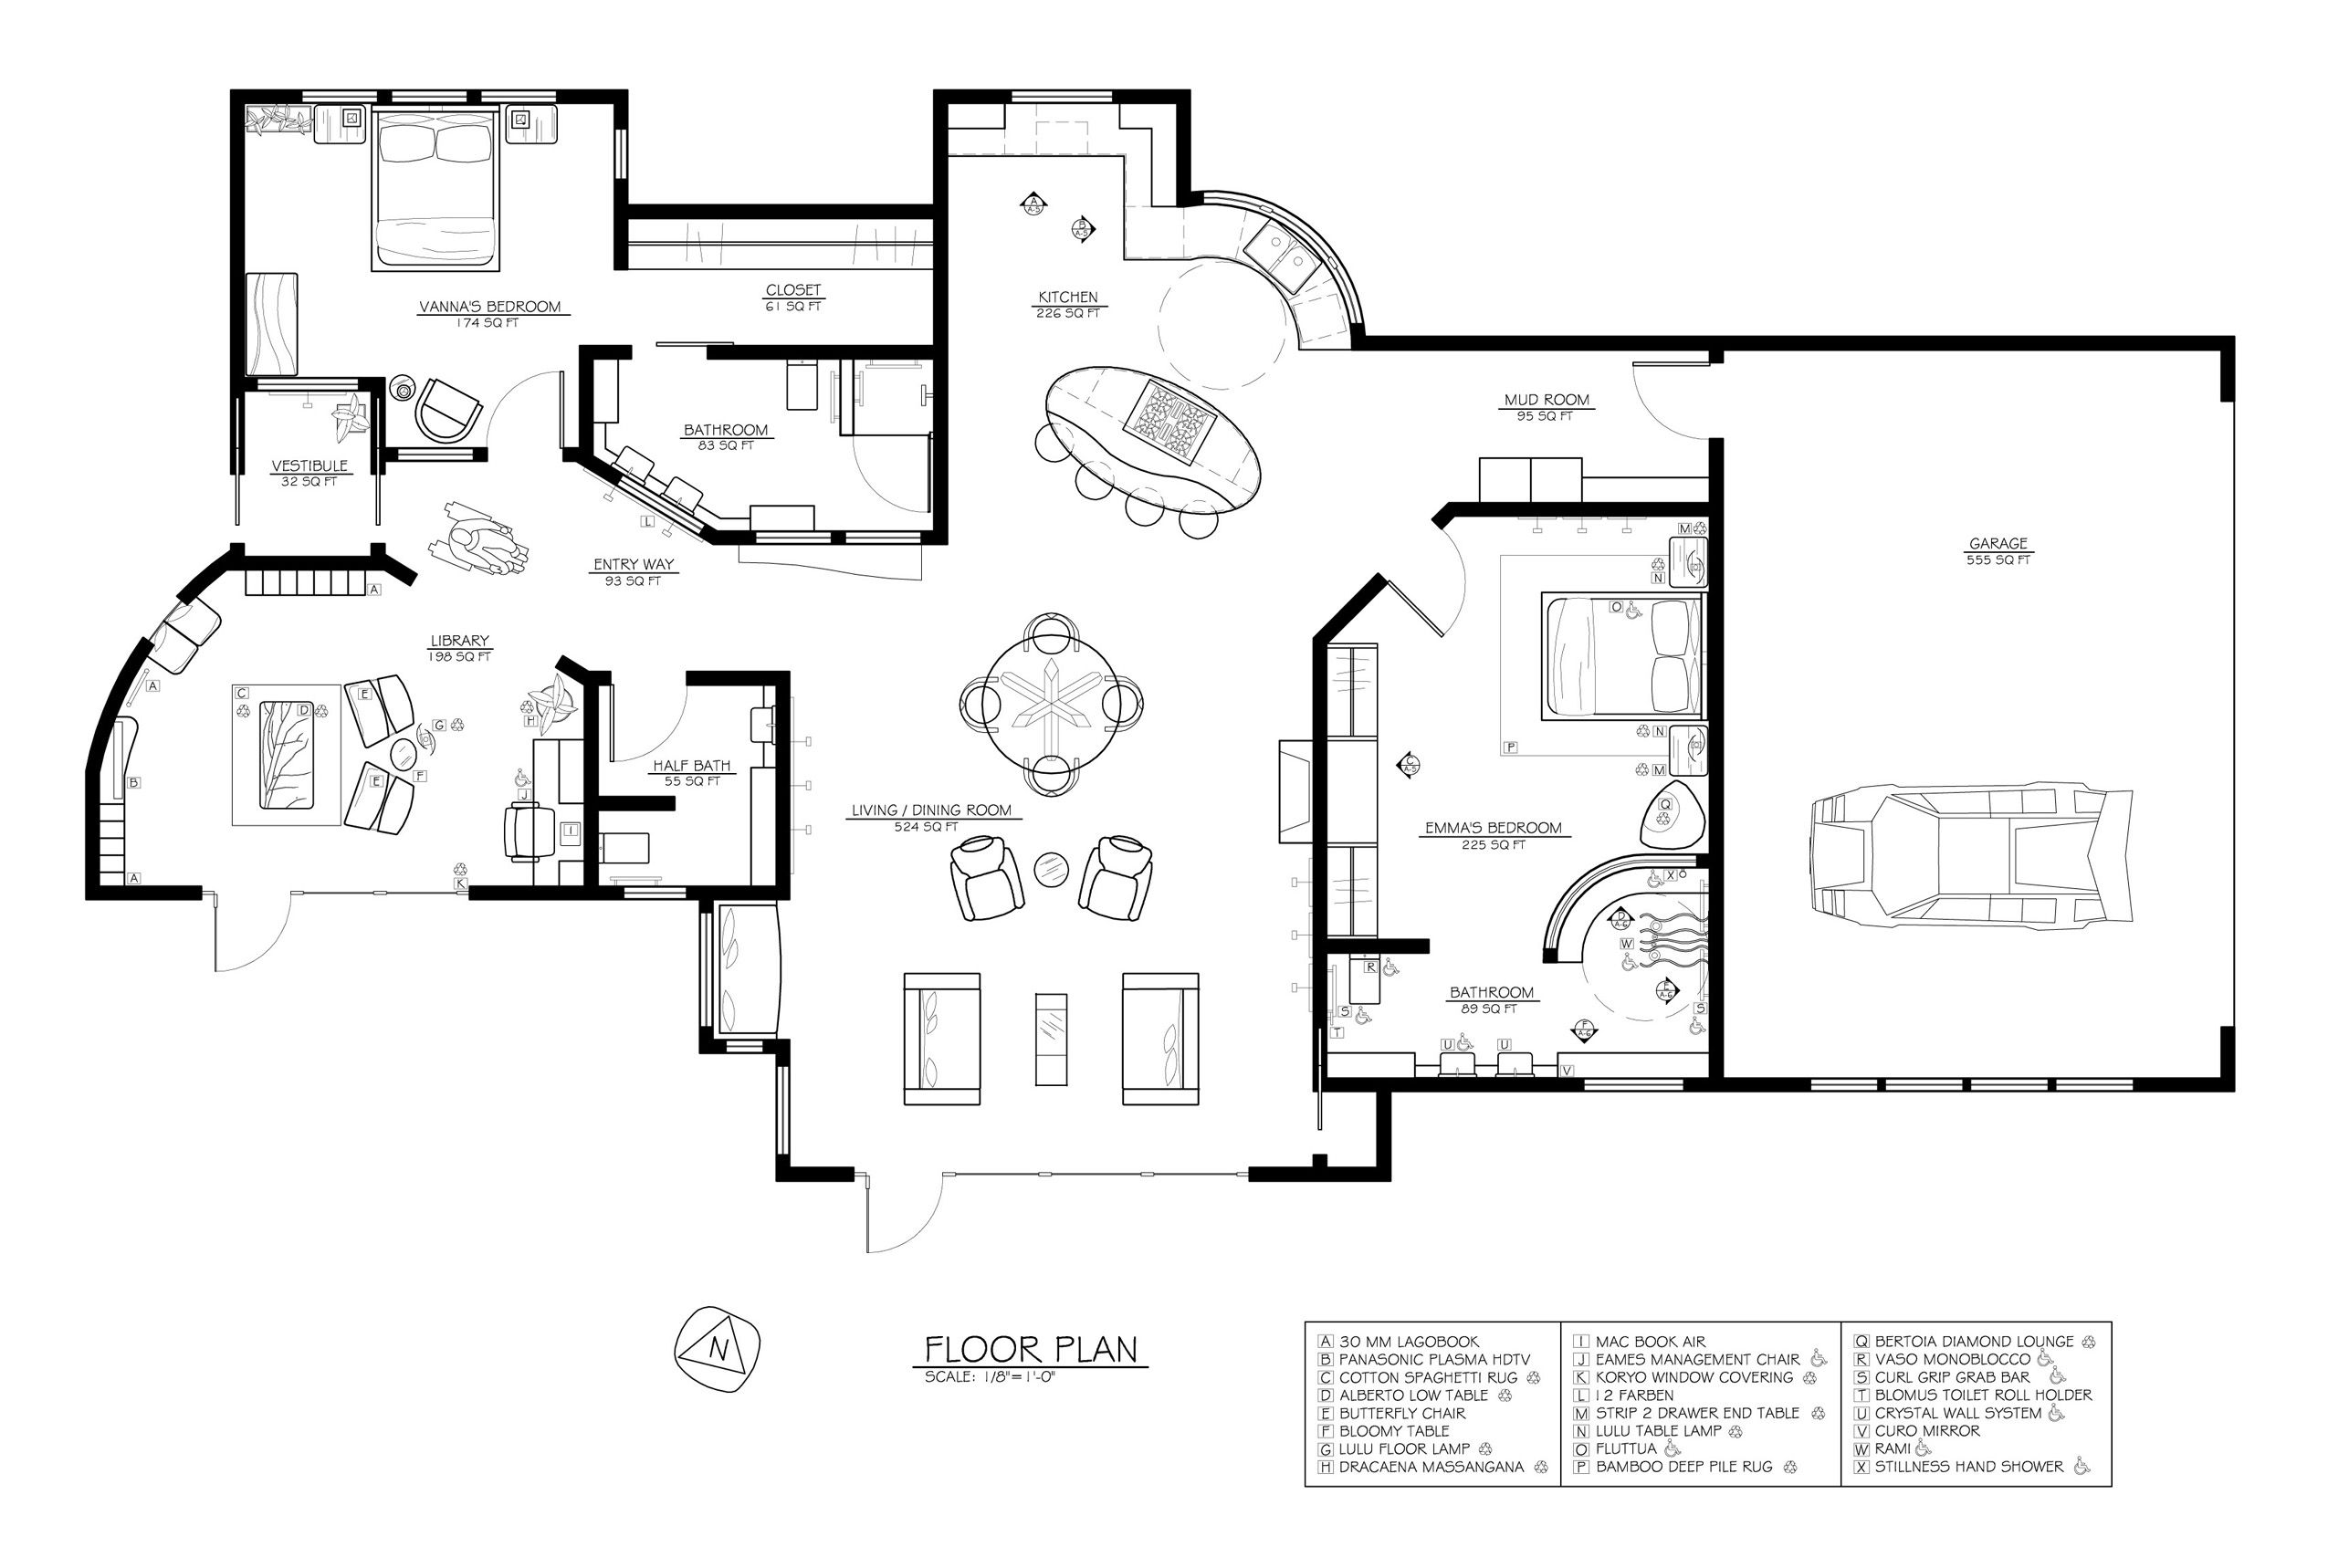 Passive Solar House Plans ADA plan | 1 bedroom | Pinterest | House ...